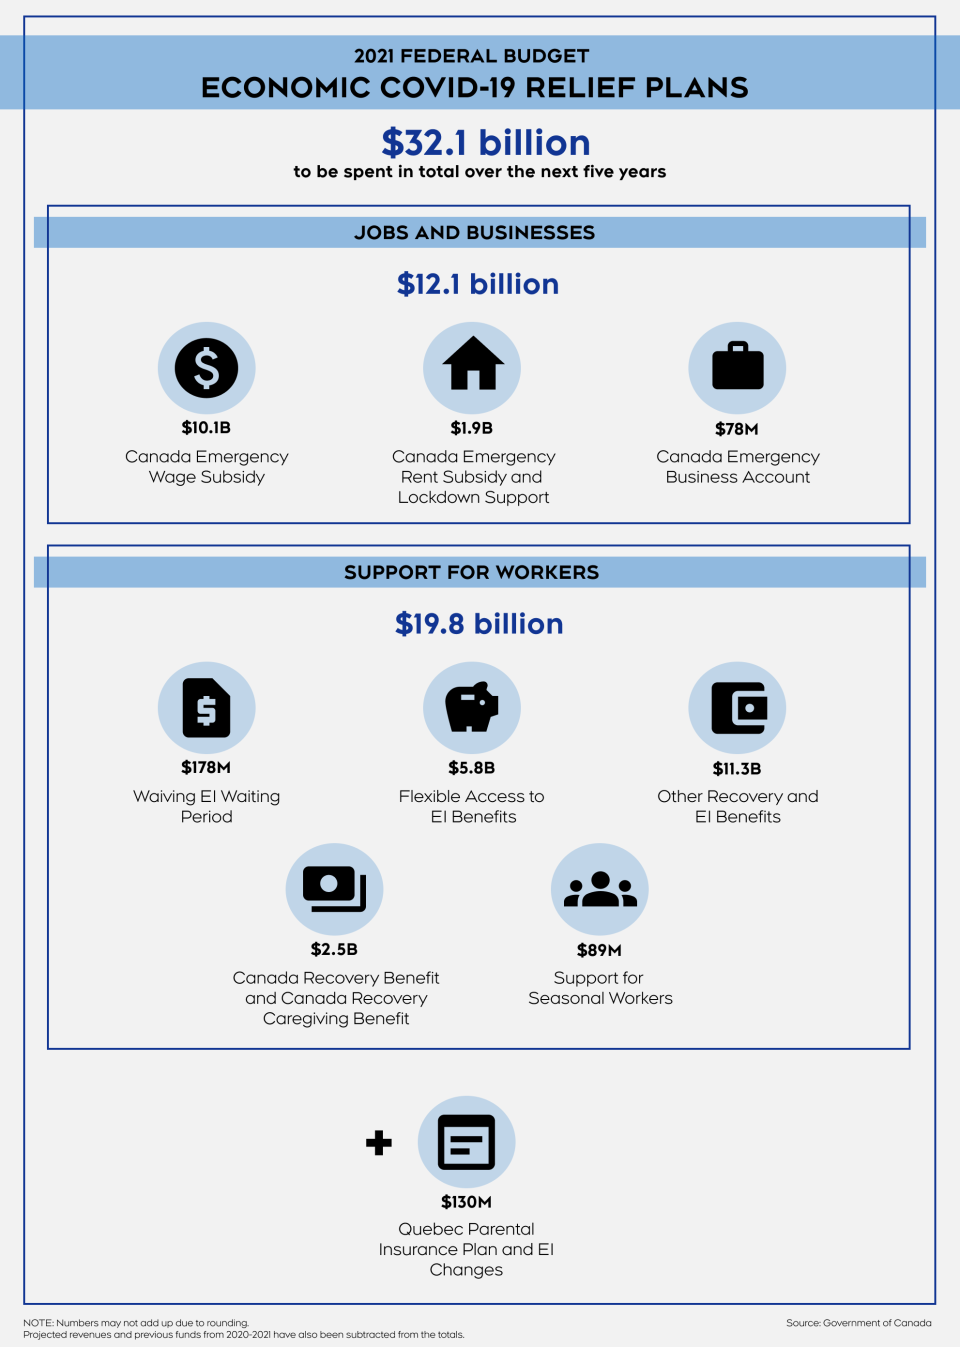 Economic COVID-19 relief plan infographic